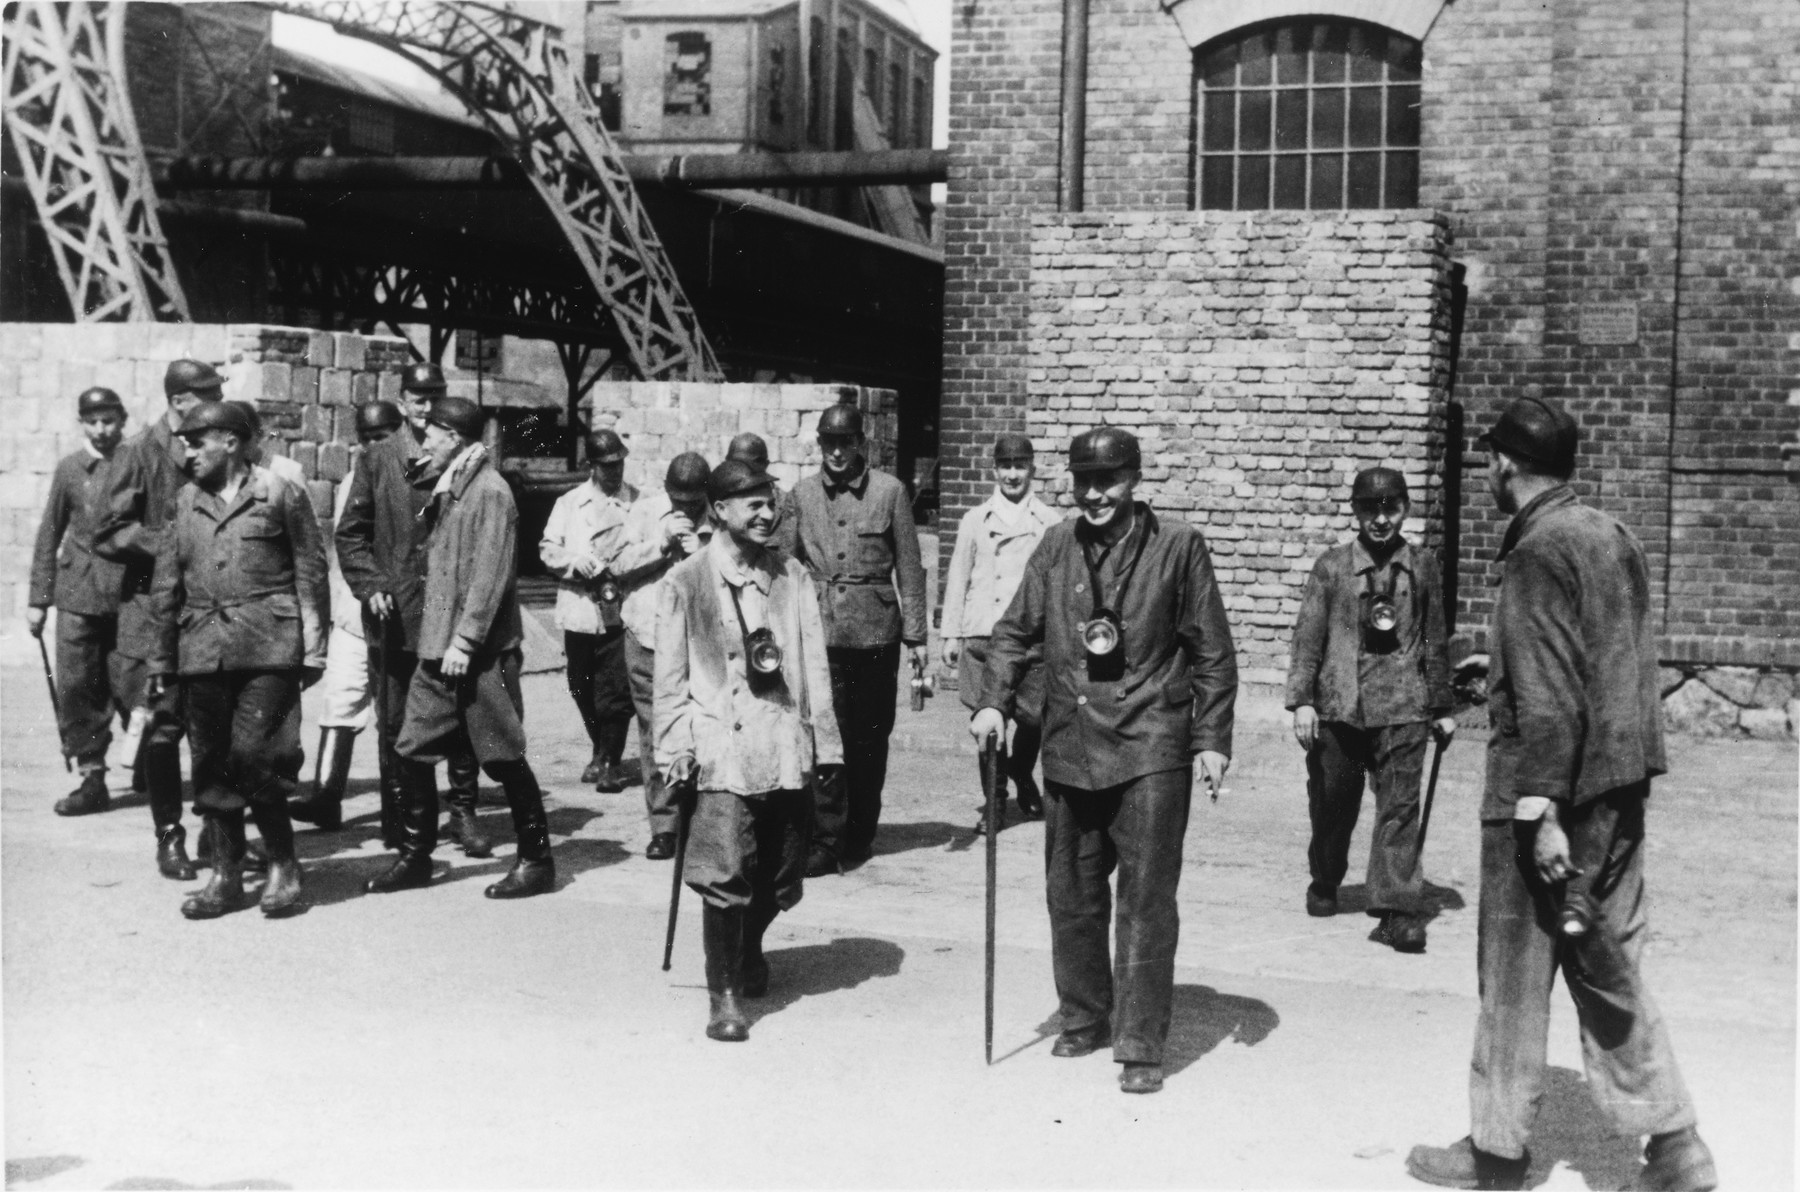 "A large group of SS officers visit a coal mine near Auschwitz.  The original caption reads ""Besichtigung eines Kohlenbergwerks."" (visiting a coal mine)  Karl Hoecker is in the center with a cane.  Behind Hoecker is Dr. Fritz Klein.  Pictured on the left are Heinz Baumkoetter, Eduard Wirths and Alfred Trzebinski.  Walking on the left with a cigarette is Dr. Enno Lolling."